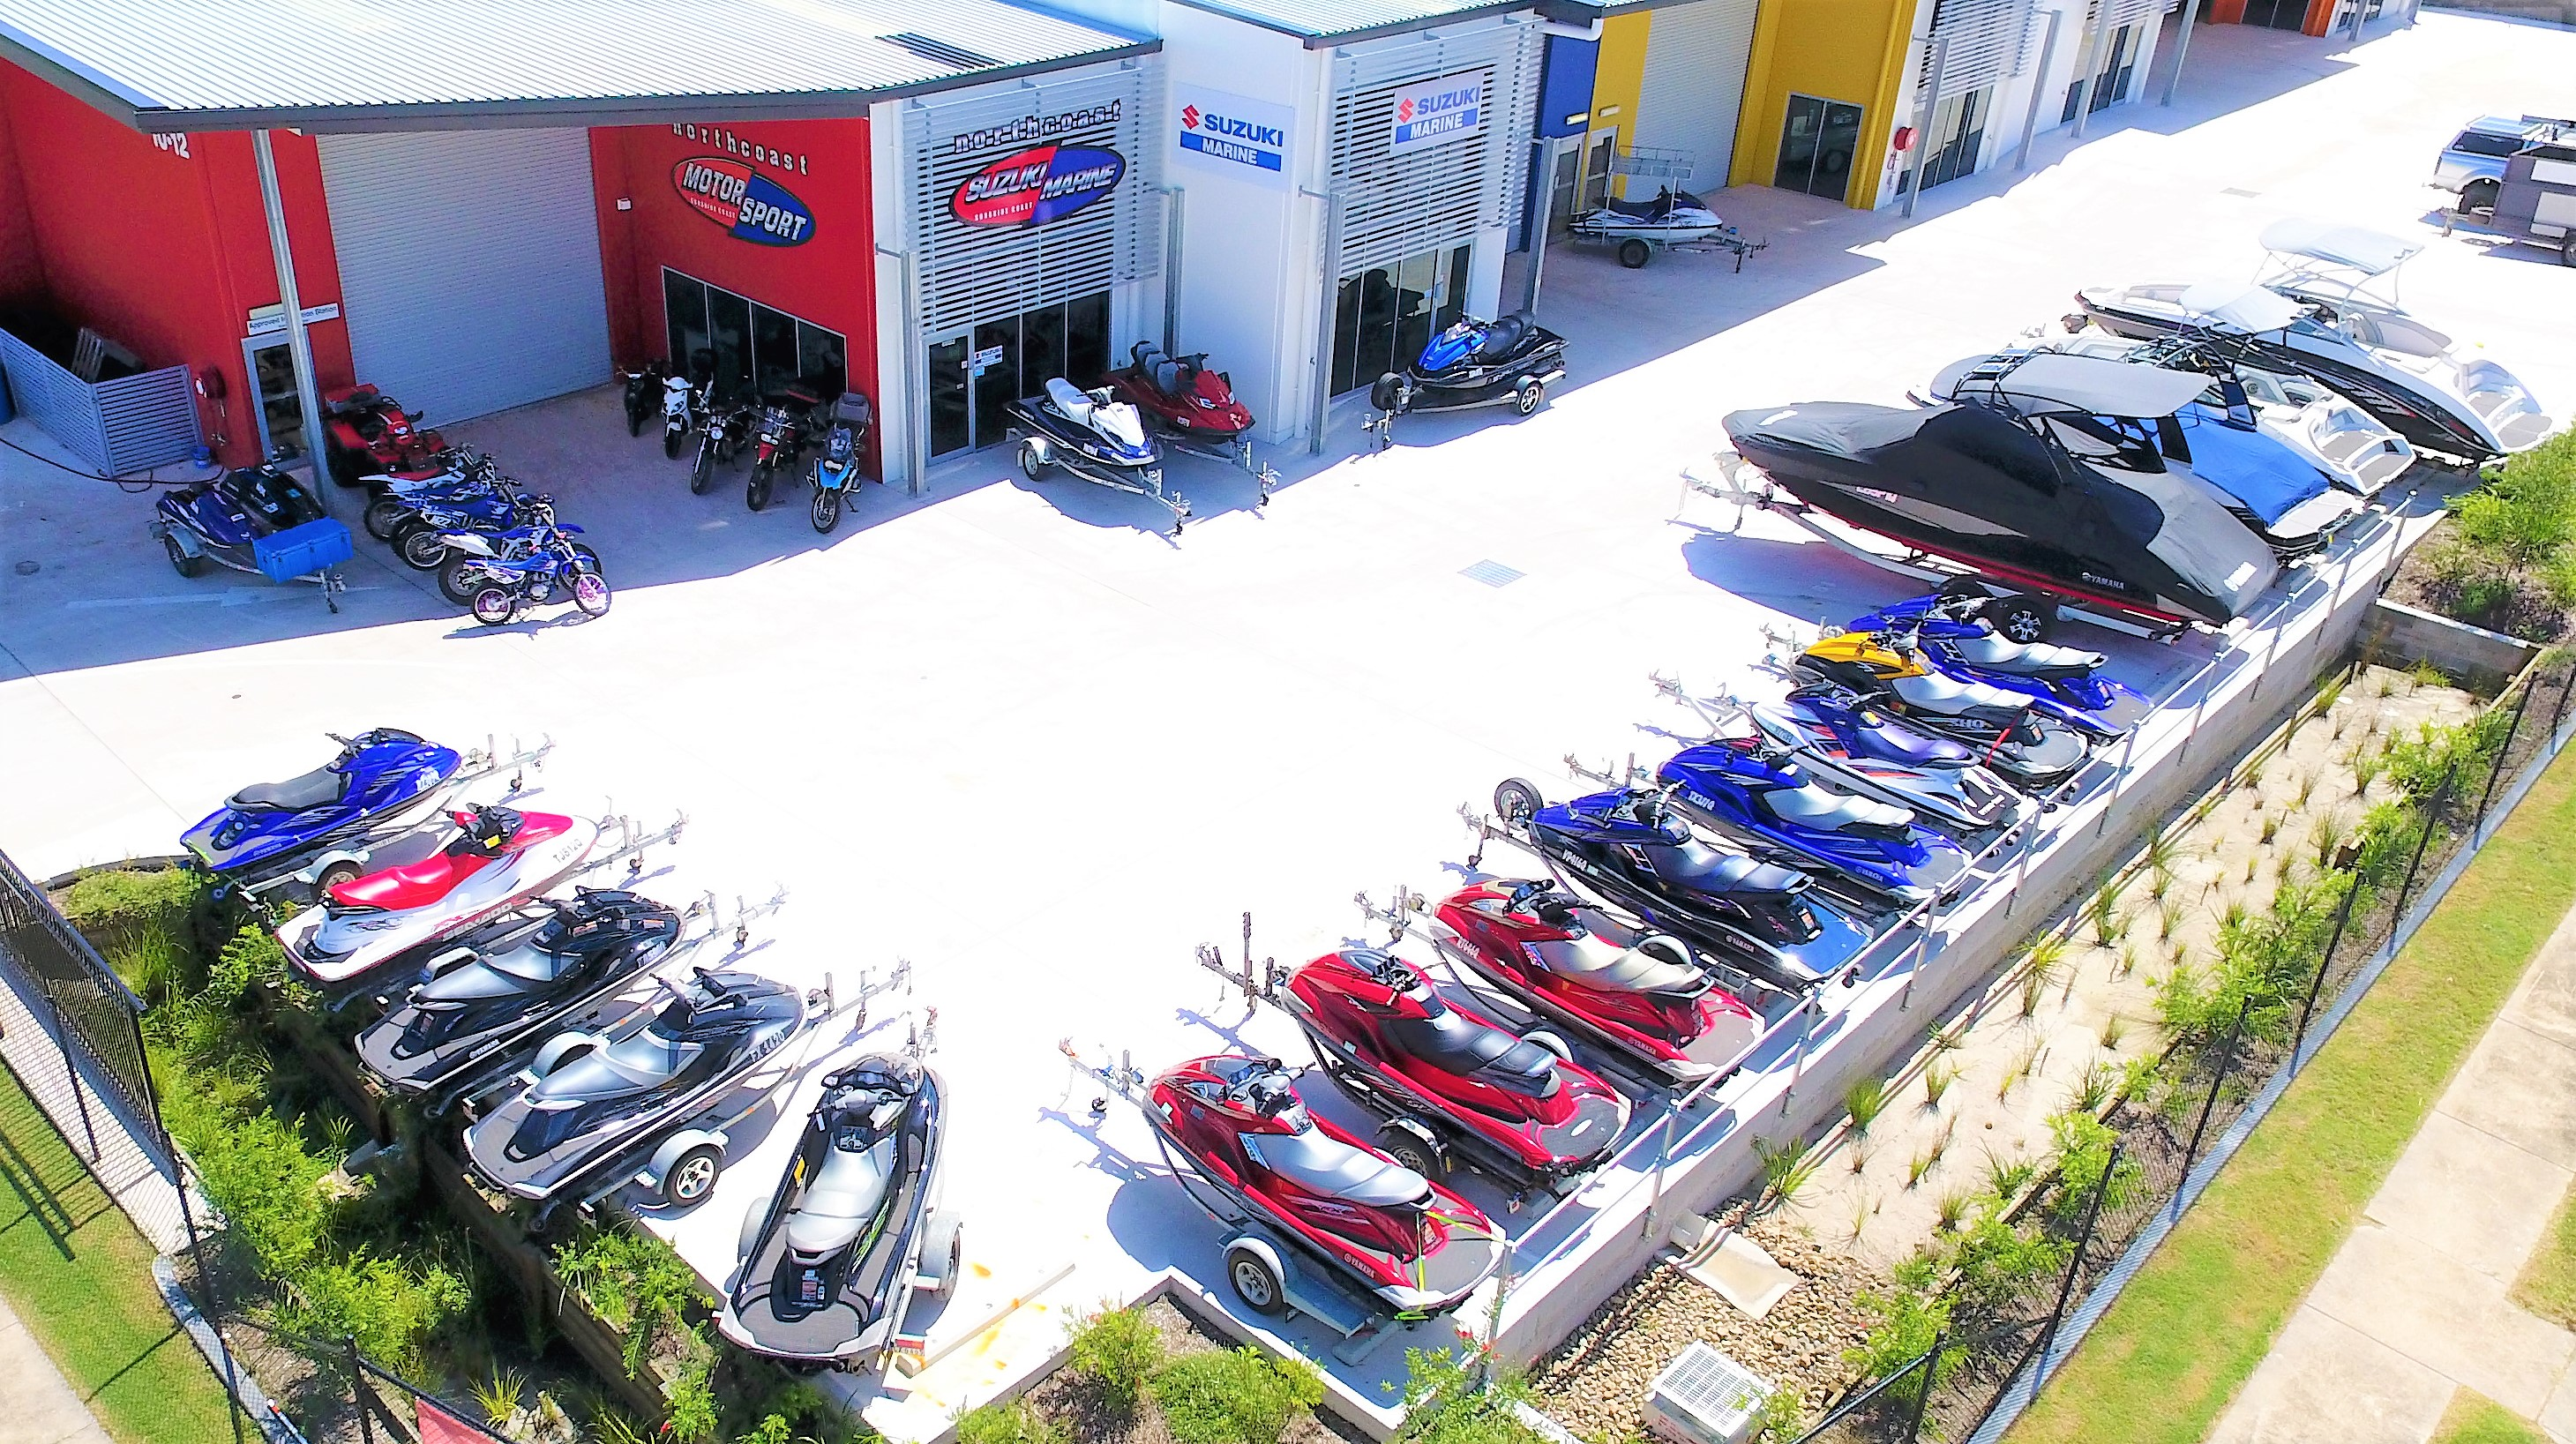 North Coast Suzuki Marine Boat Motors Outboards 10 Claude Boyd 1988 Outboard Motor Parts Shop Drone Image